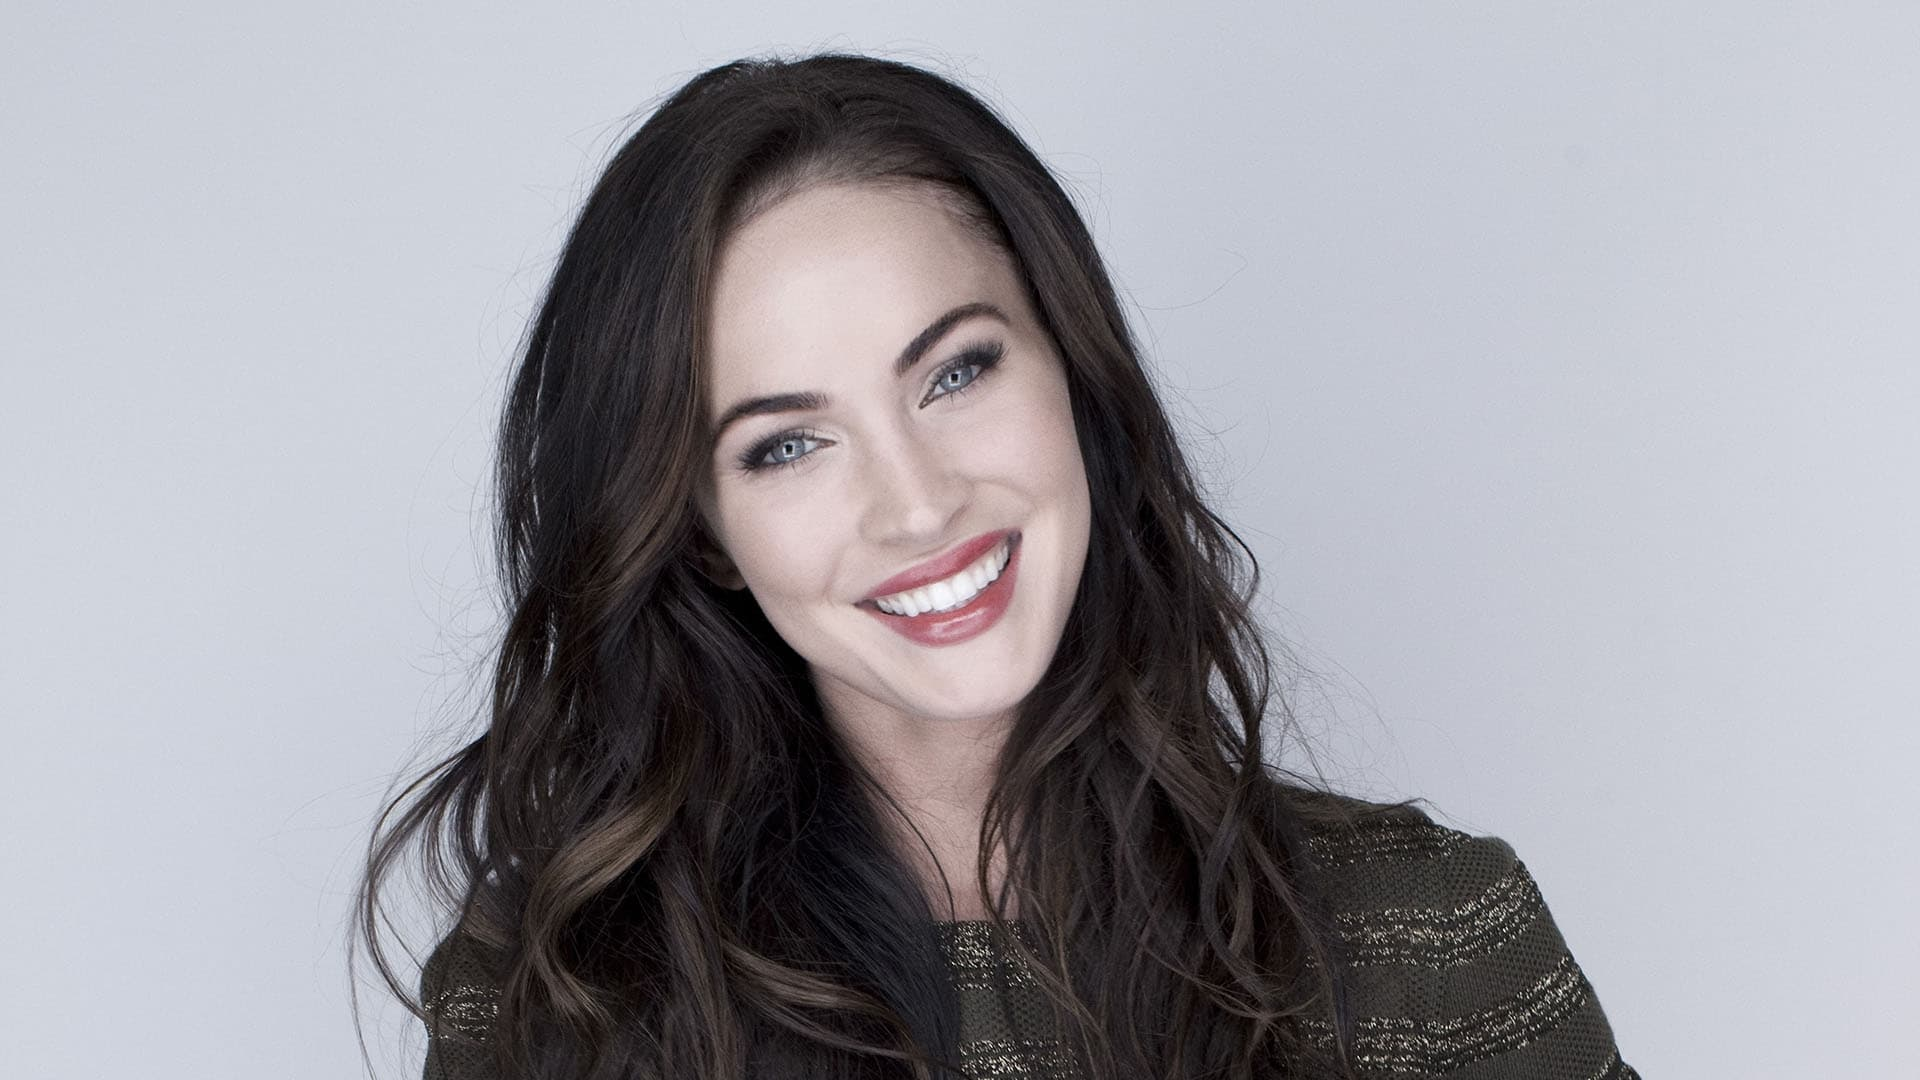 All Anime In One Wallpaper 40 Megan Fox Wallpapers High Quality Download